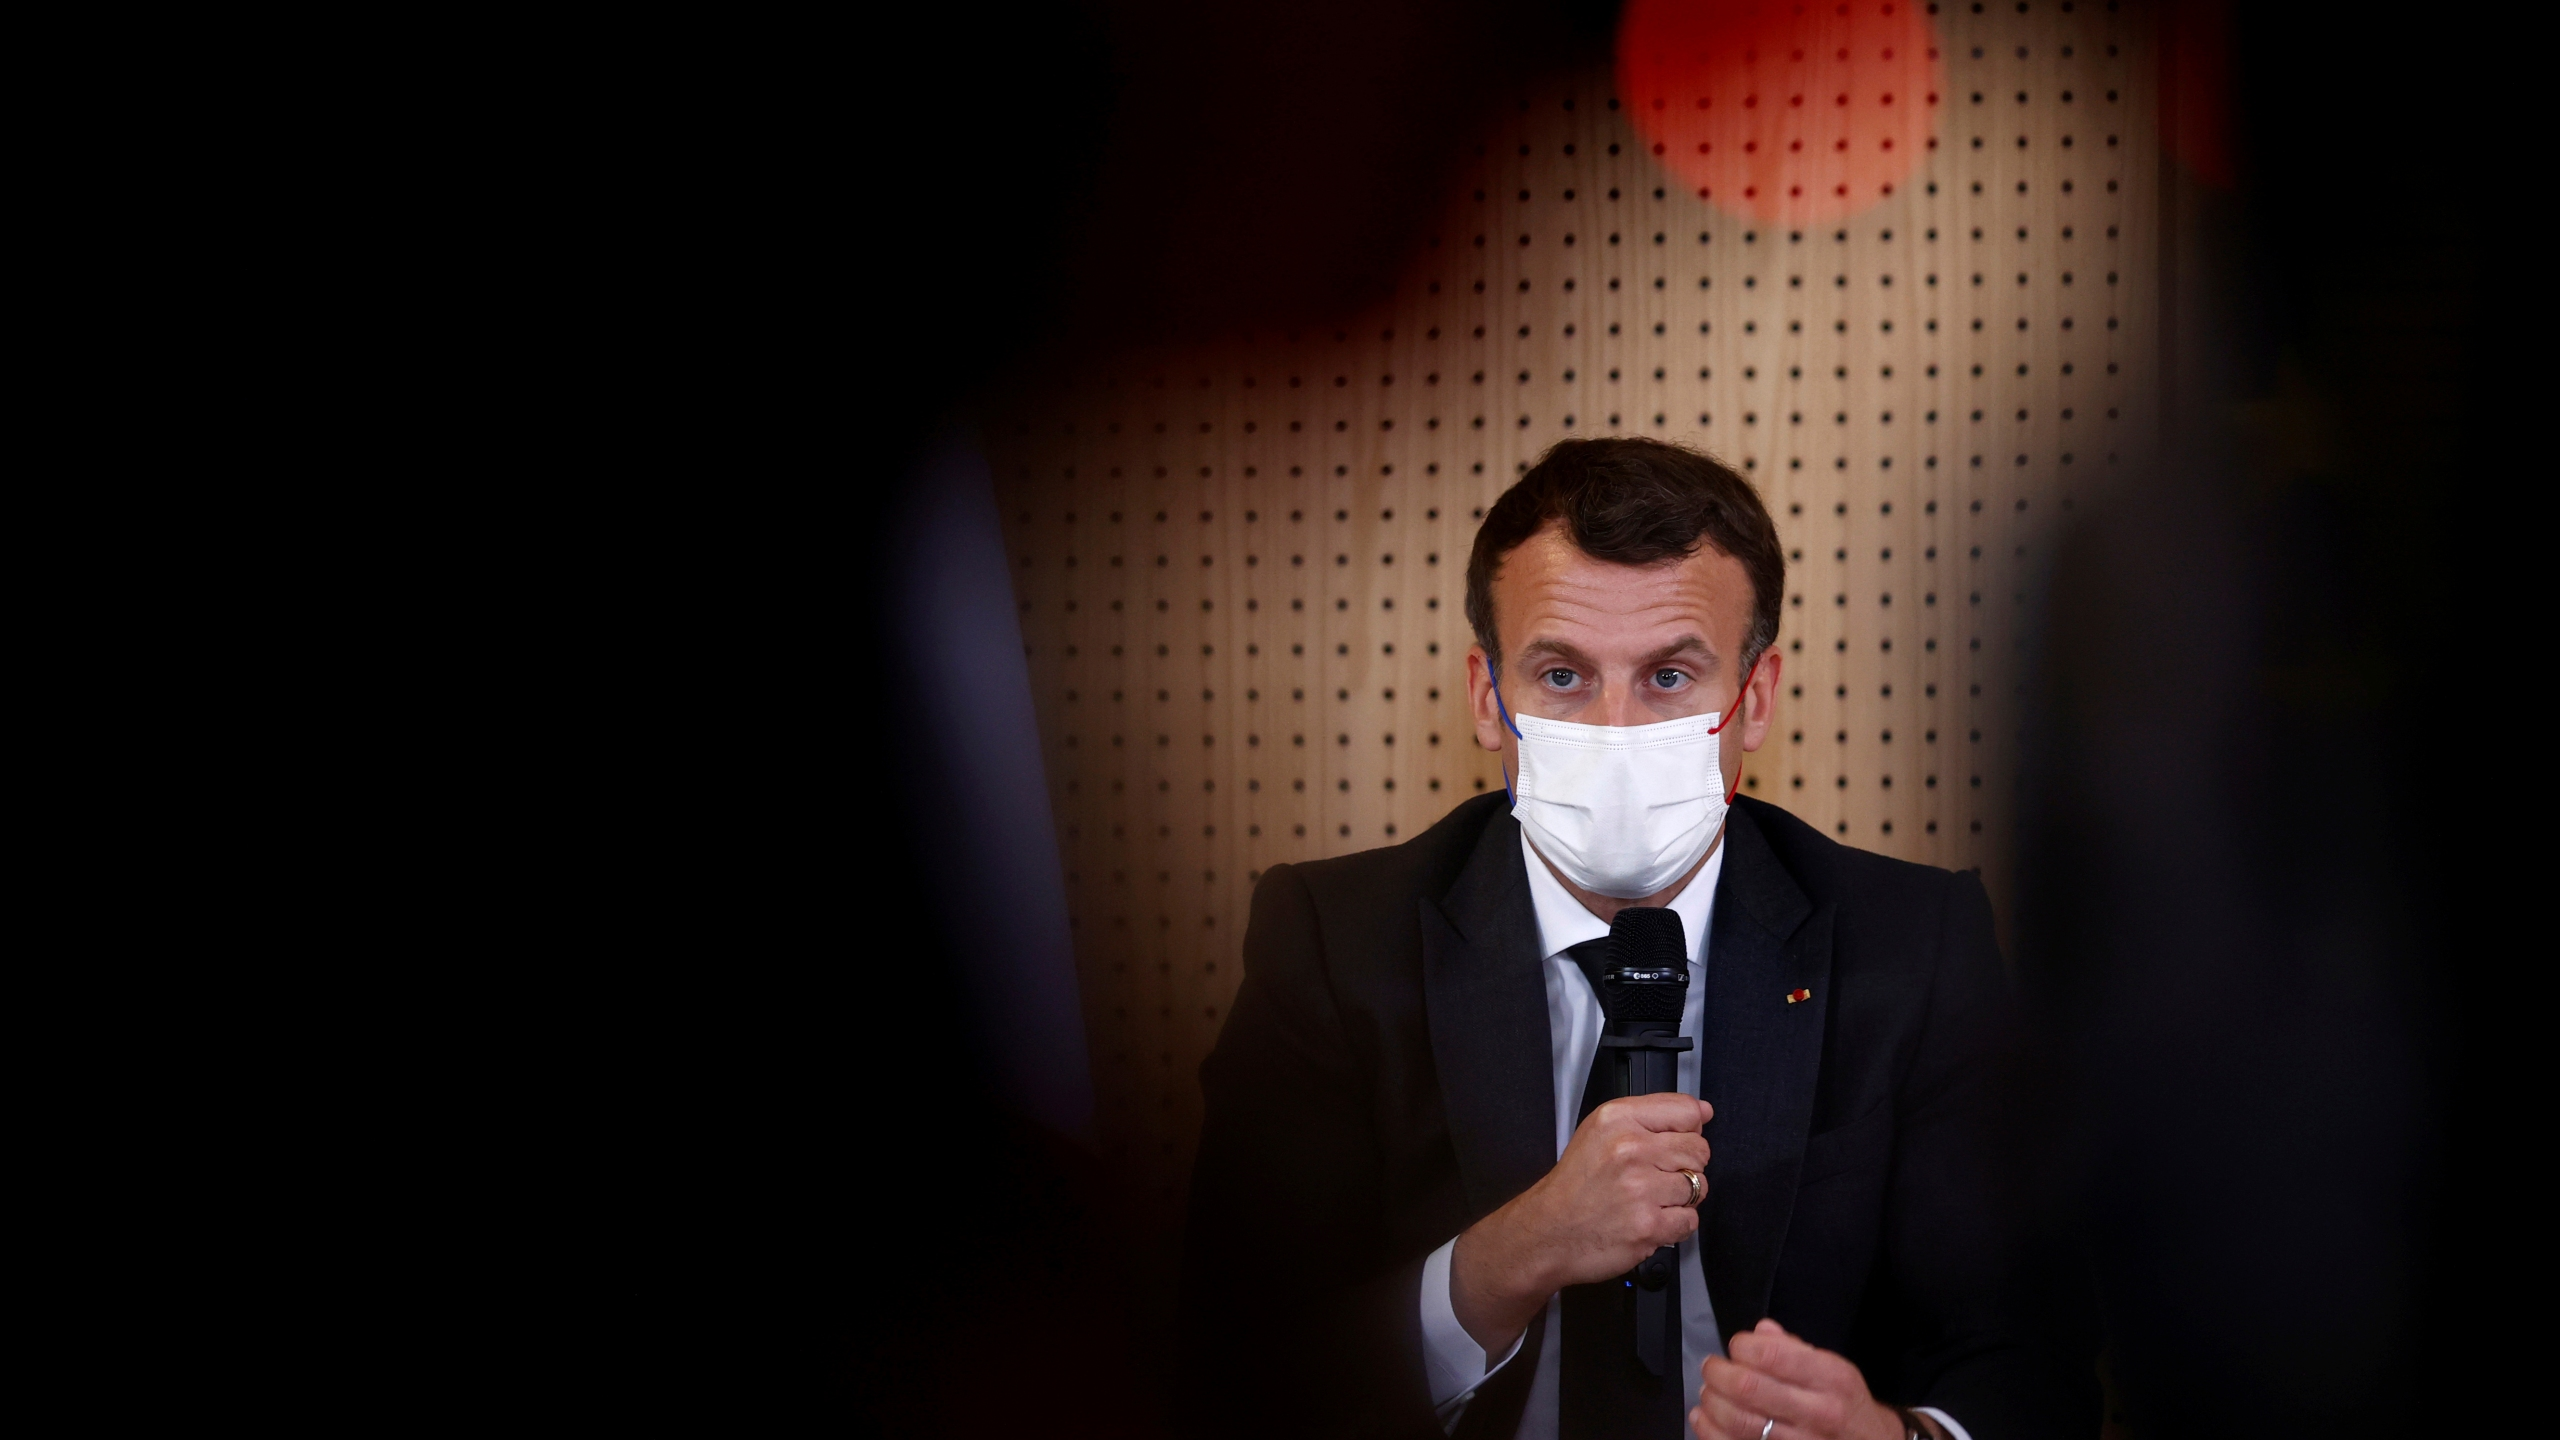 French President Macron visits a child psychiatry department at Reims hospital